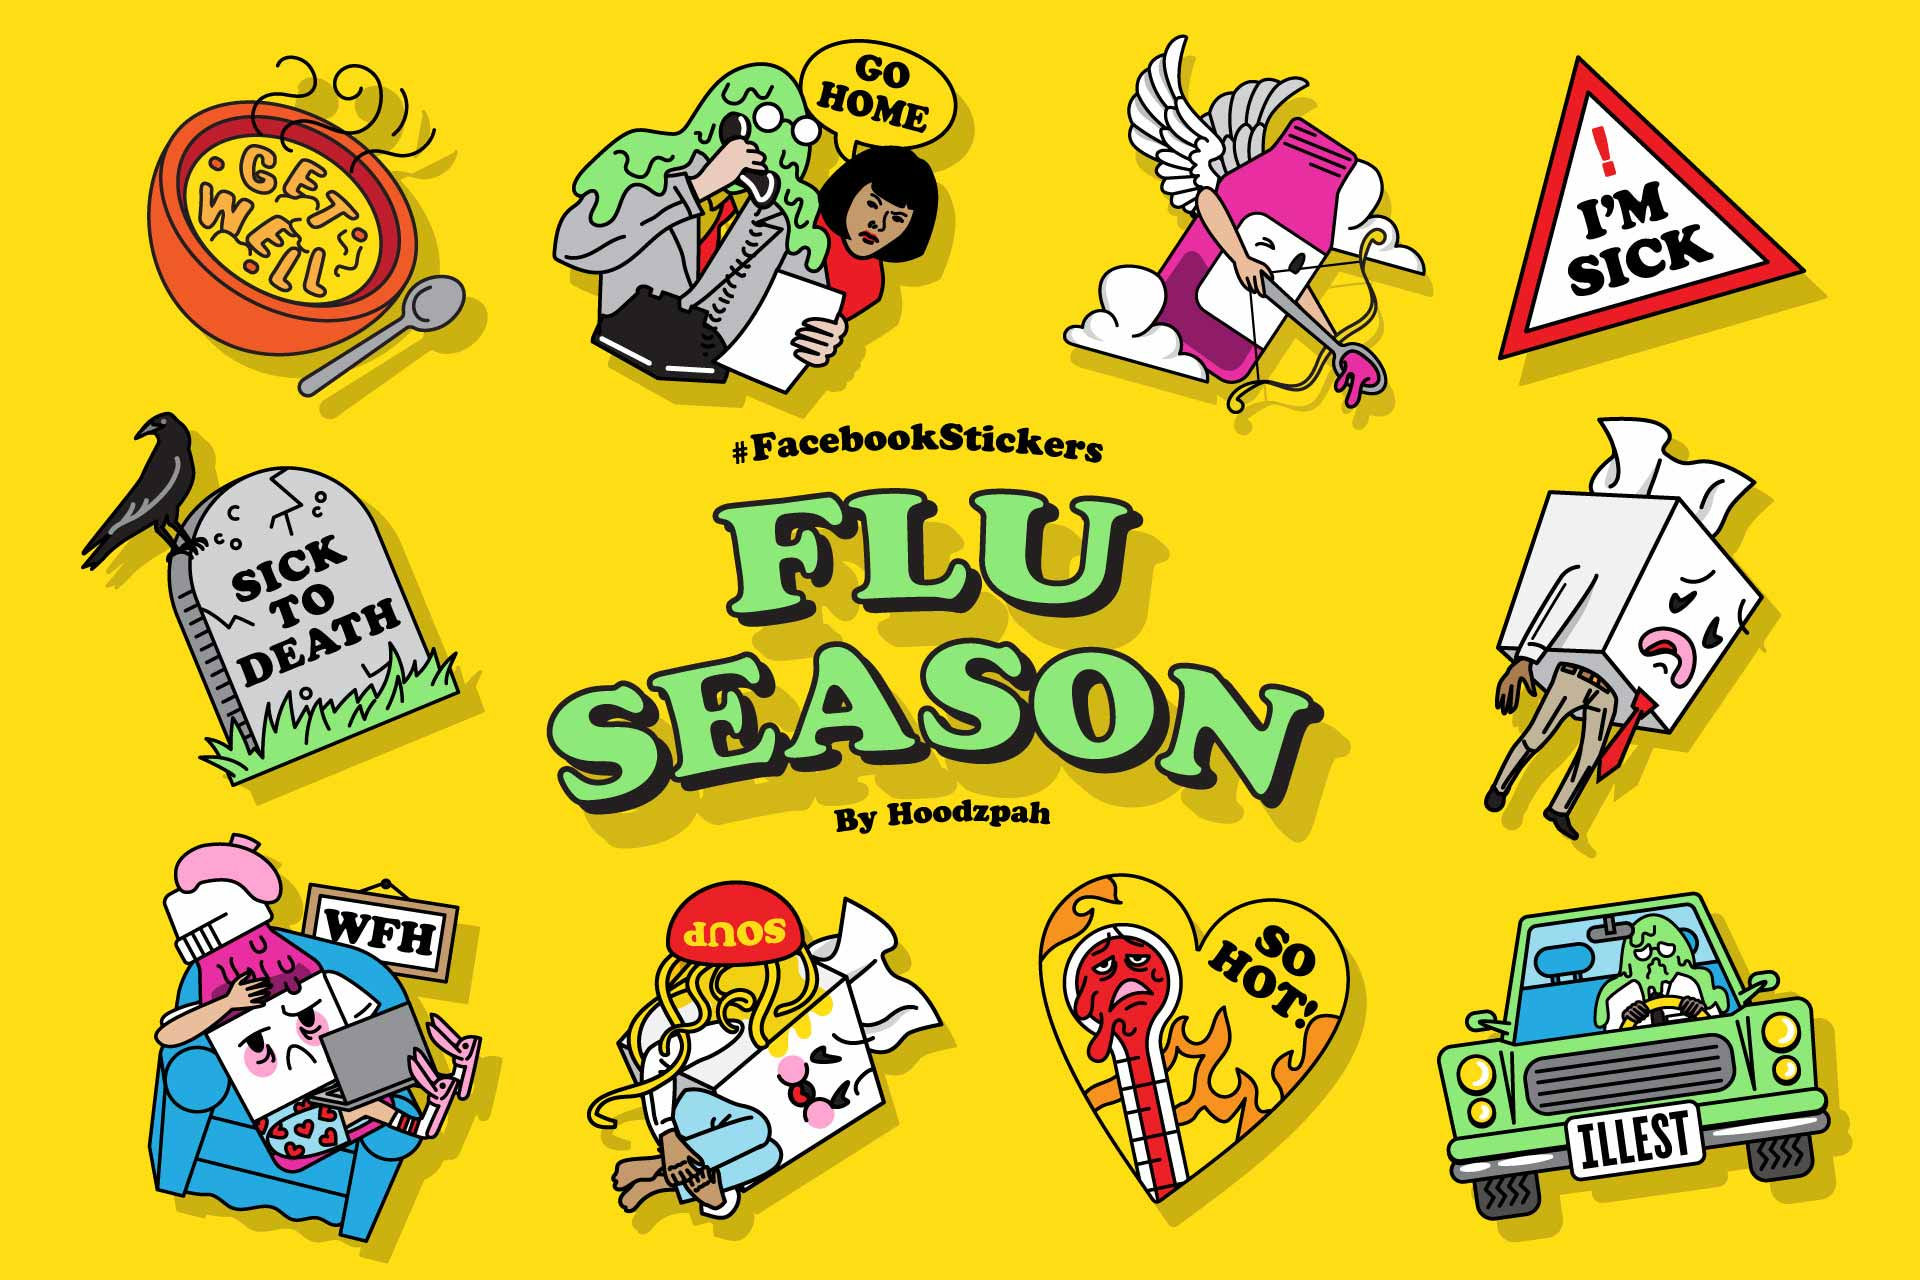 Facebook Flu Season Sticker Set Design by Hoodzpah